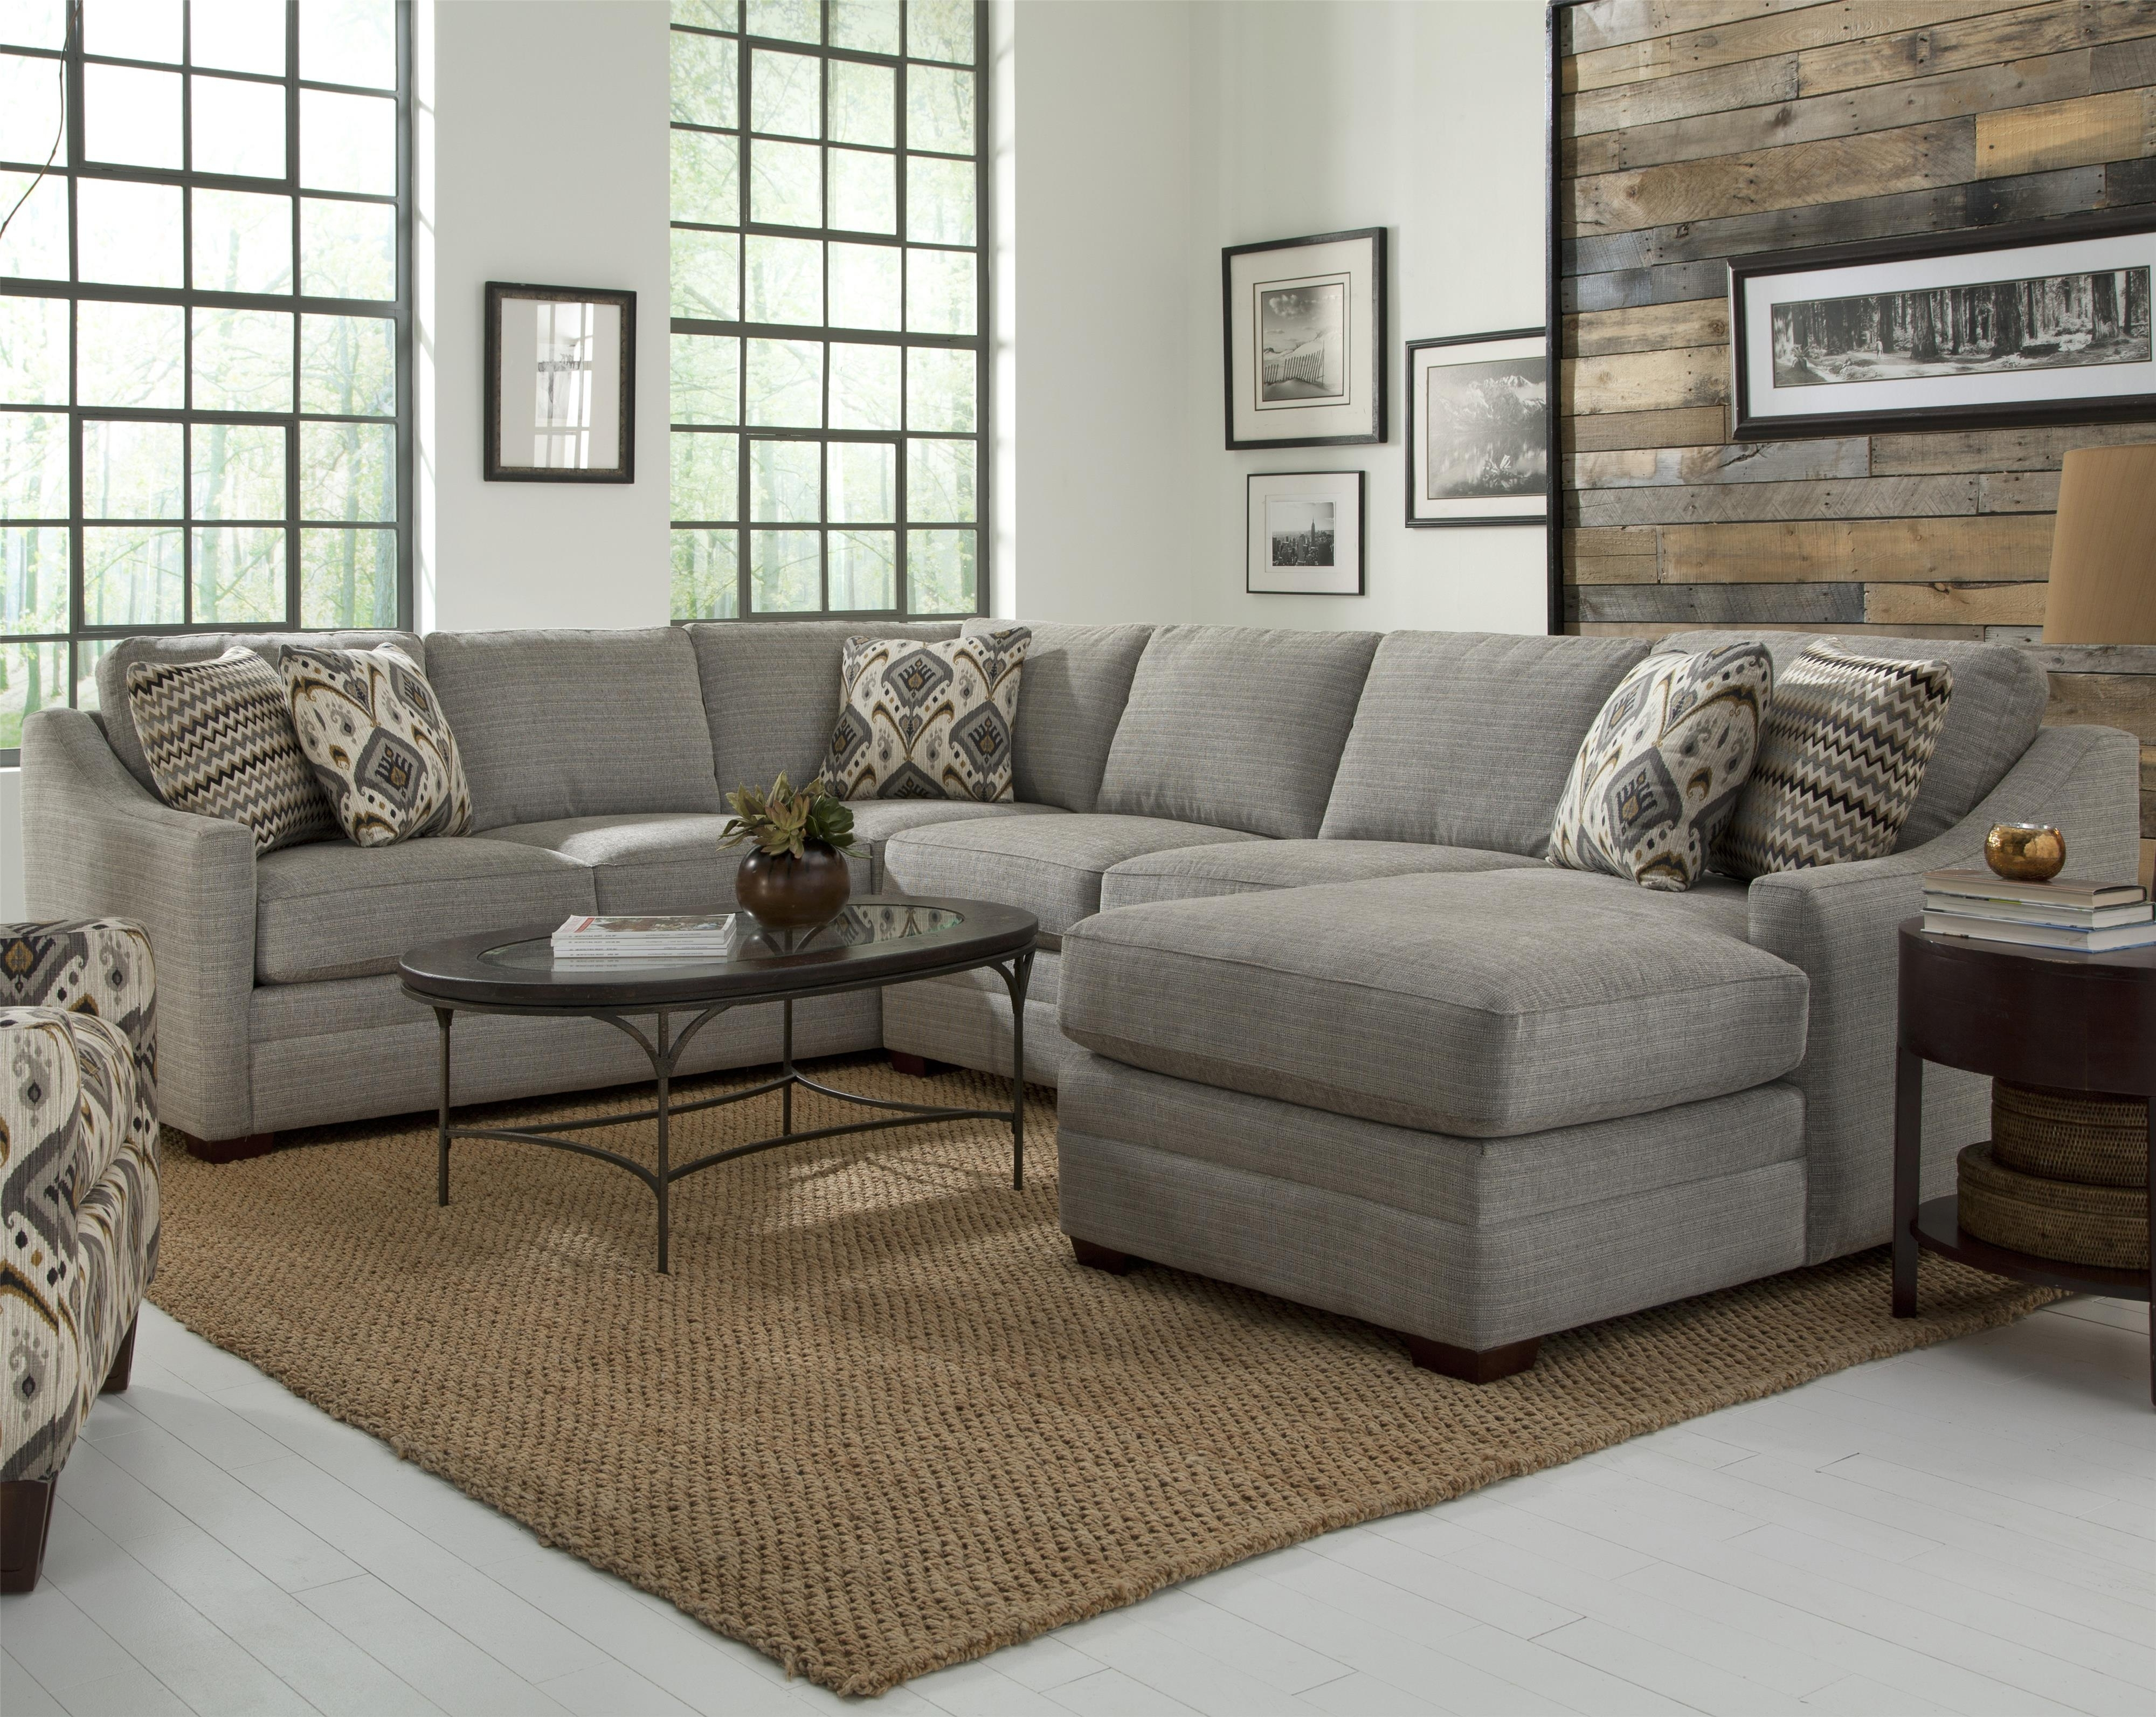 Customizable Four Piece Sectional Sofacraftmaster | Wolf And With Regard To Gardiners Sectional Sofas (View 8 of 10)